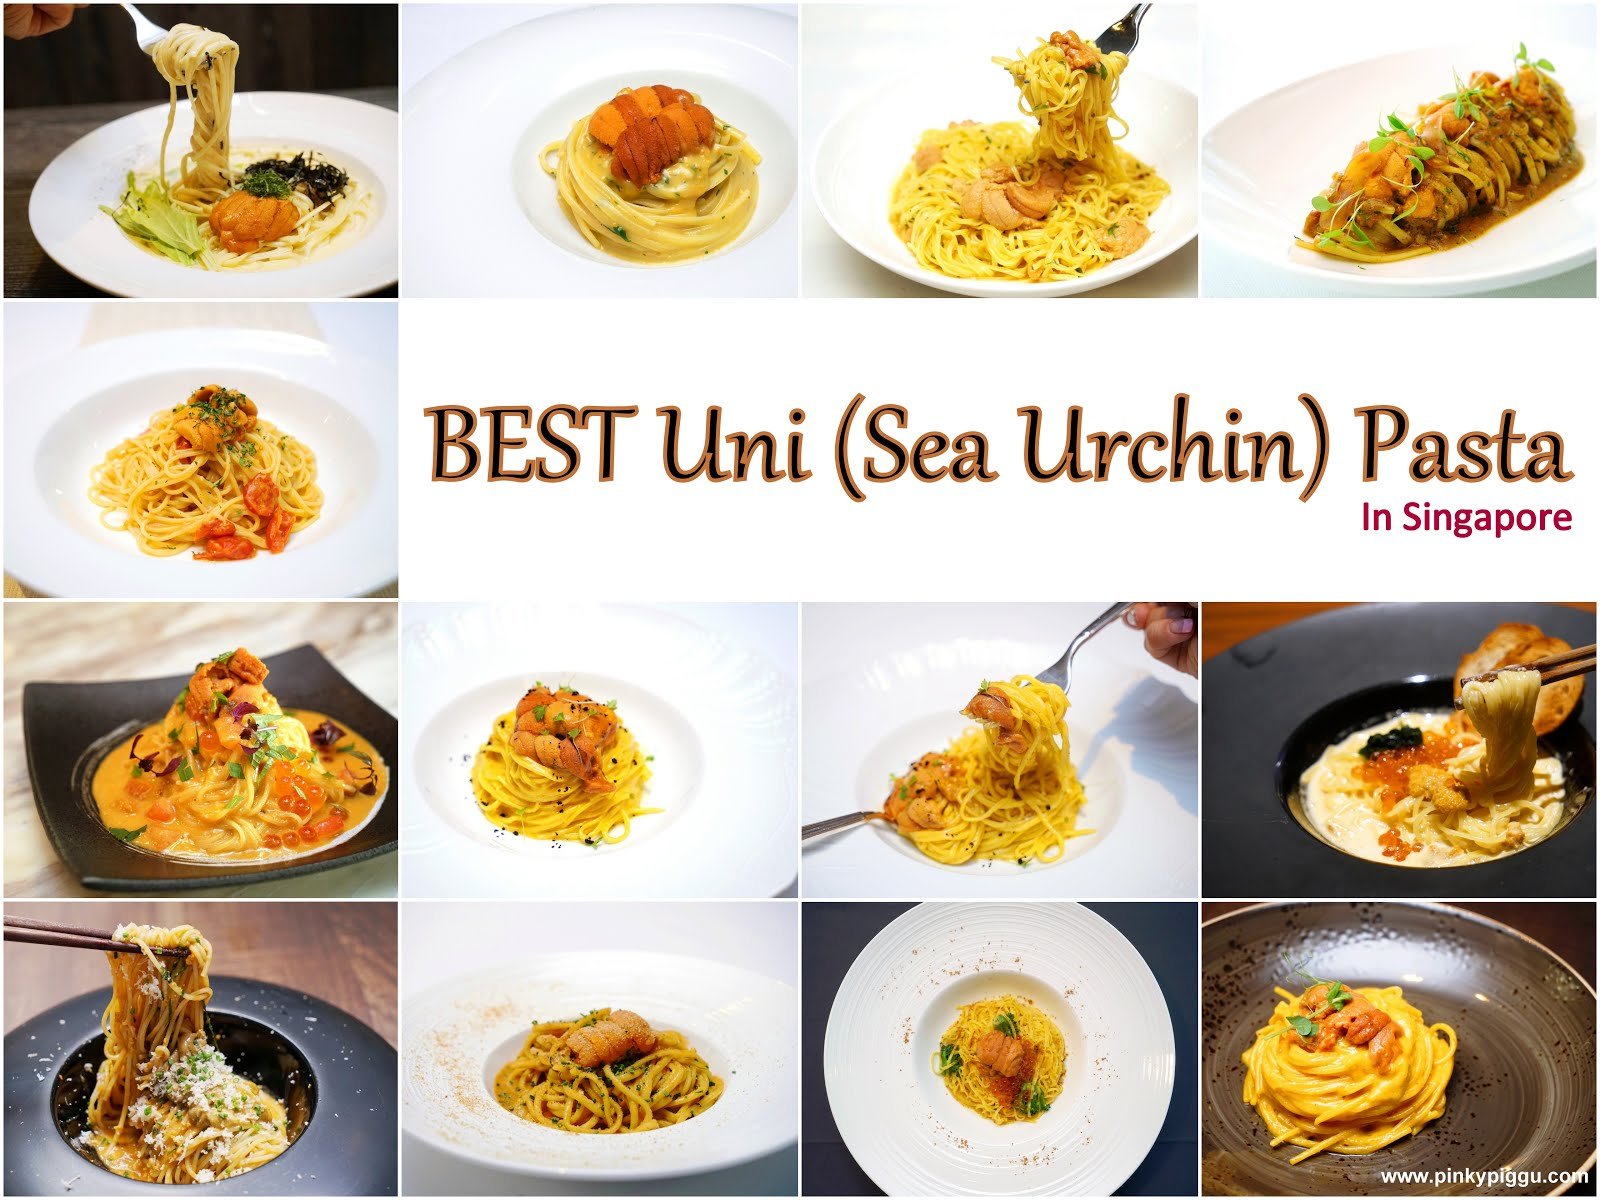 BEST Uni (Sea Urchin) Pasta In Singapore!